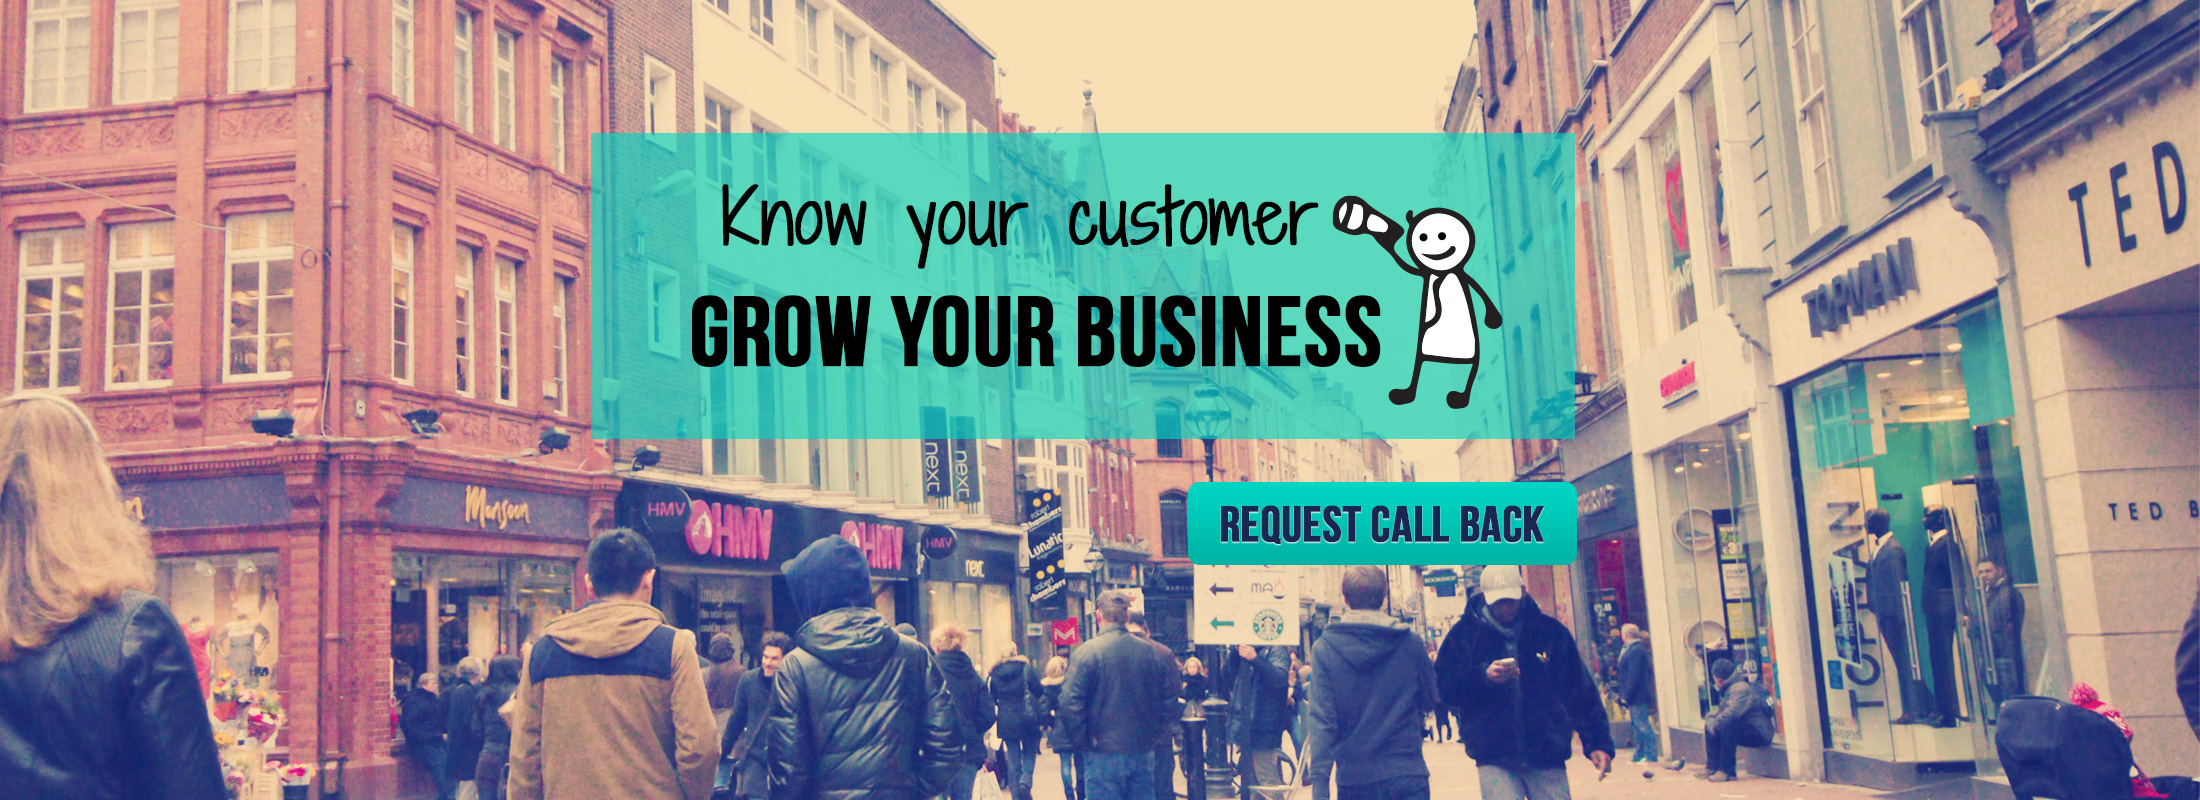 Know Your customer. Grow Your Business